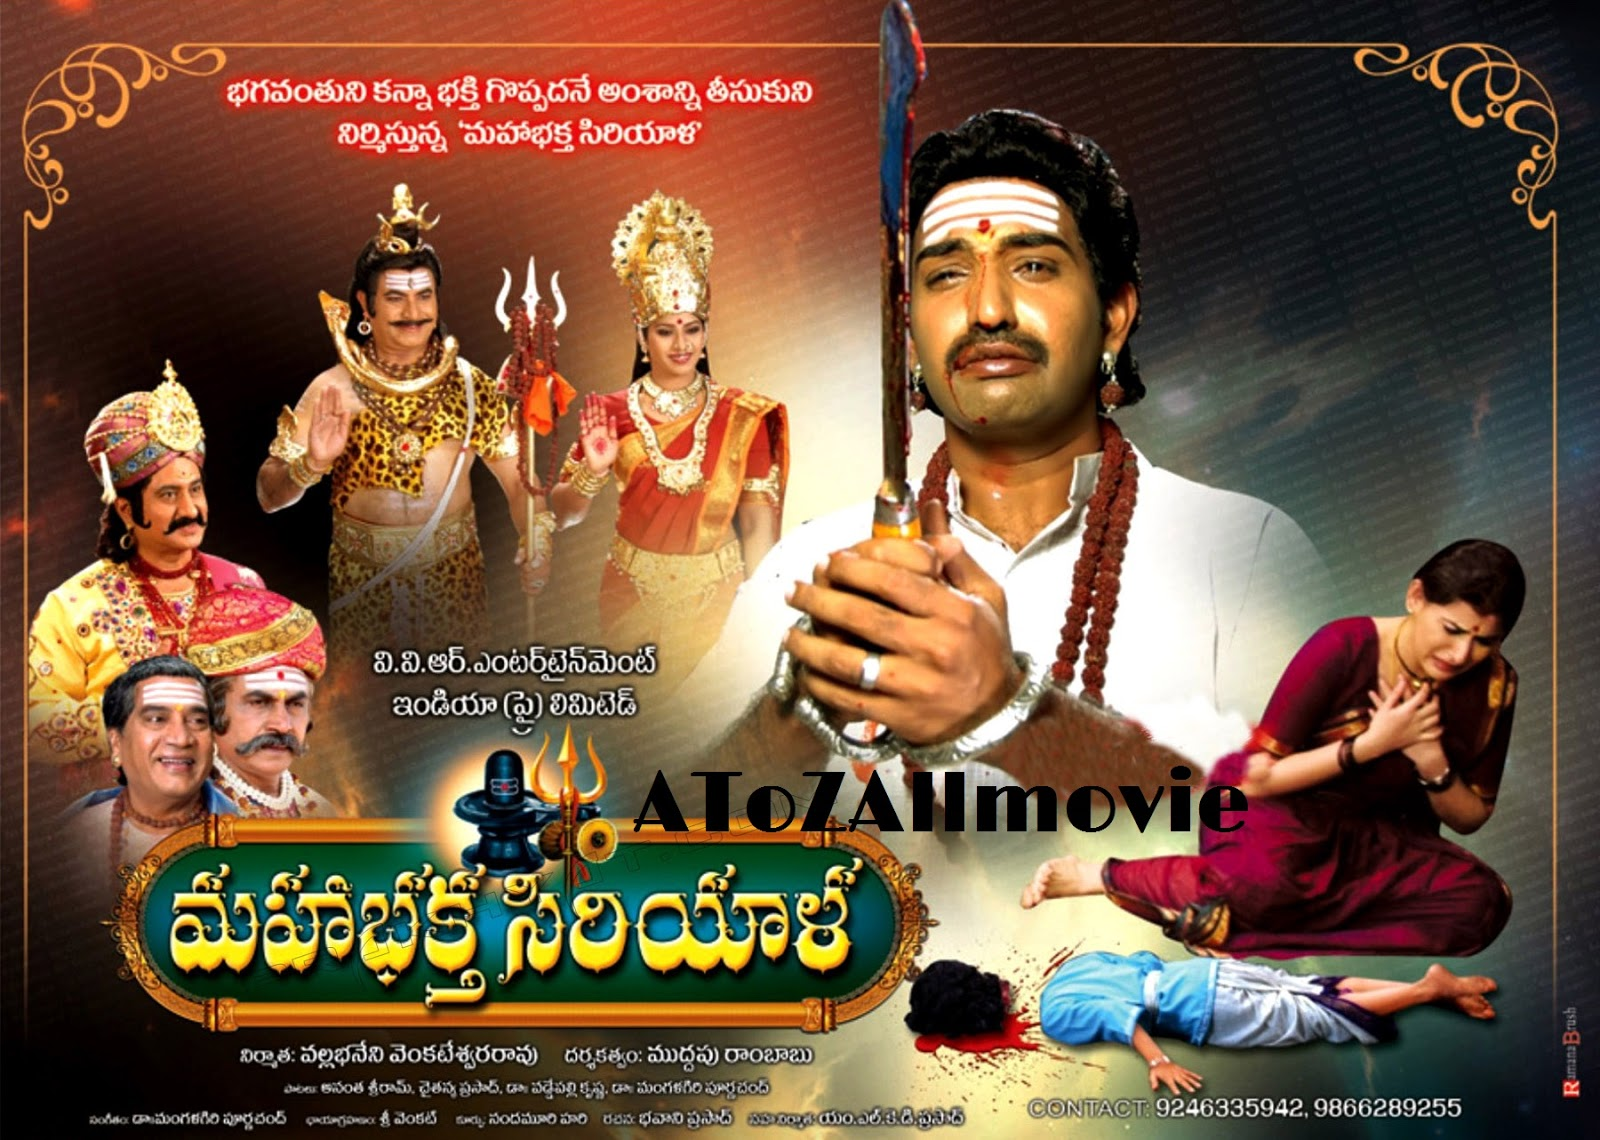 maha bhaktha siriyala telugu movie songs